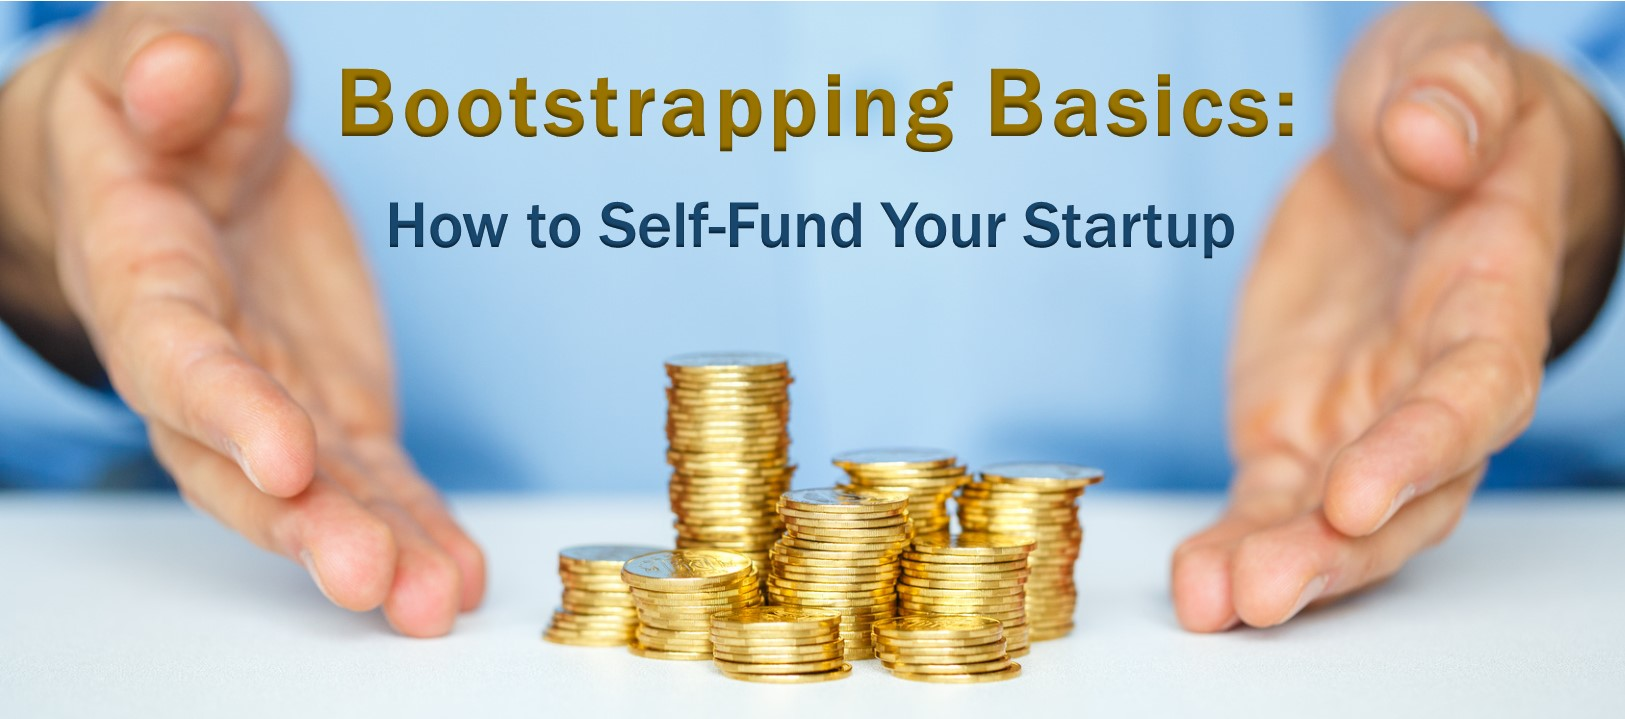 Bootstrapping Basics: How to Self-Fund Your Startup